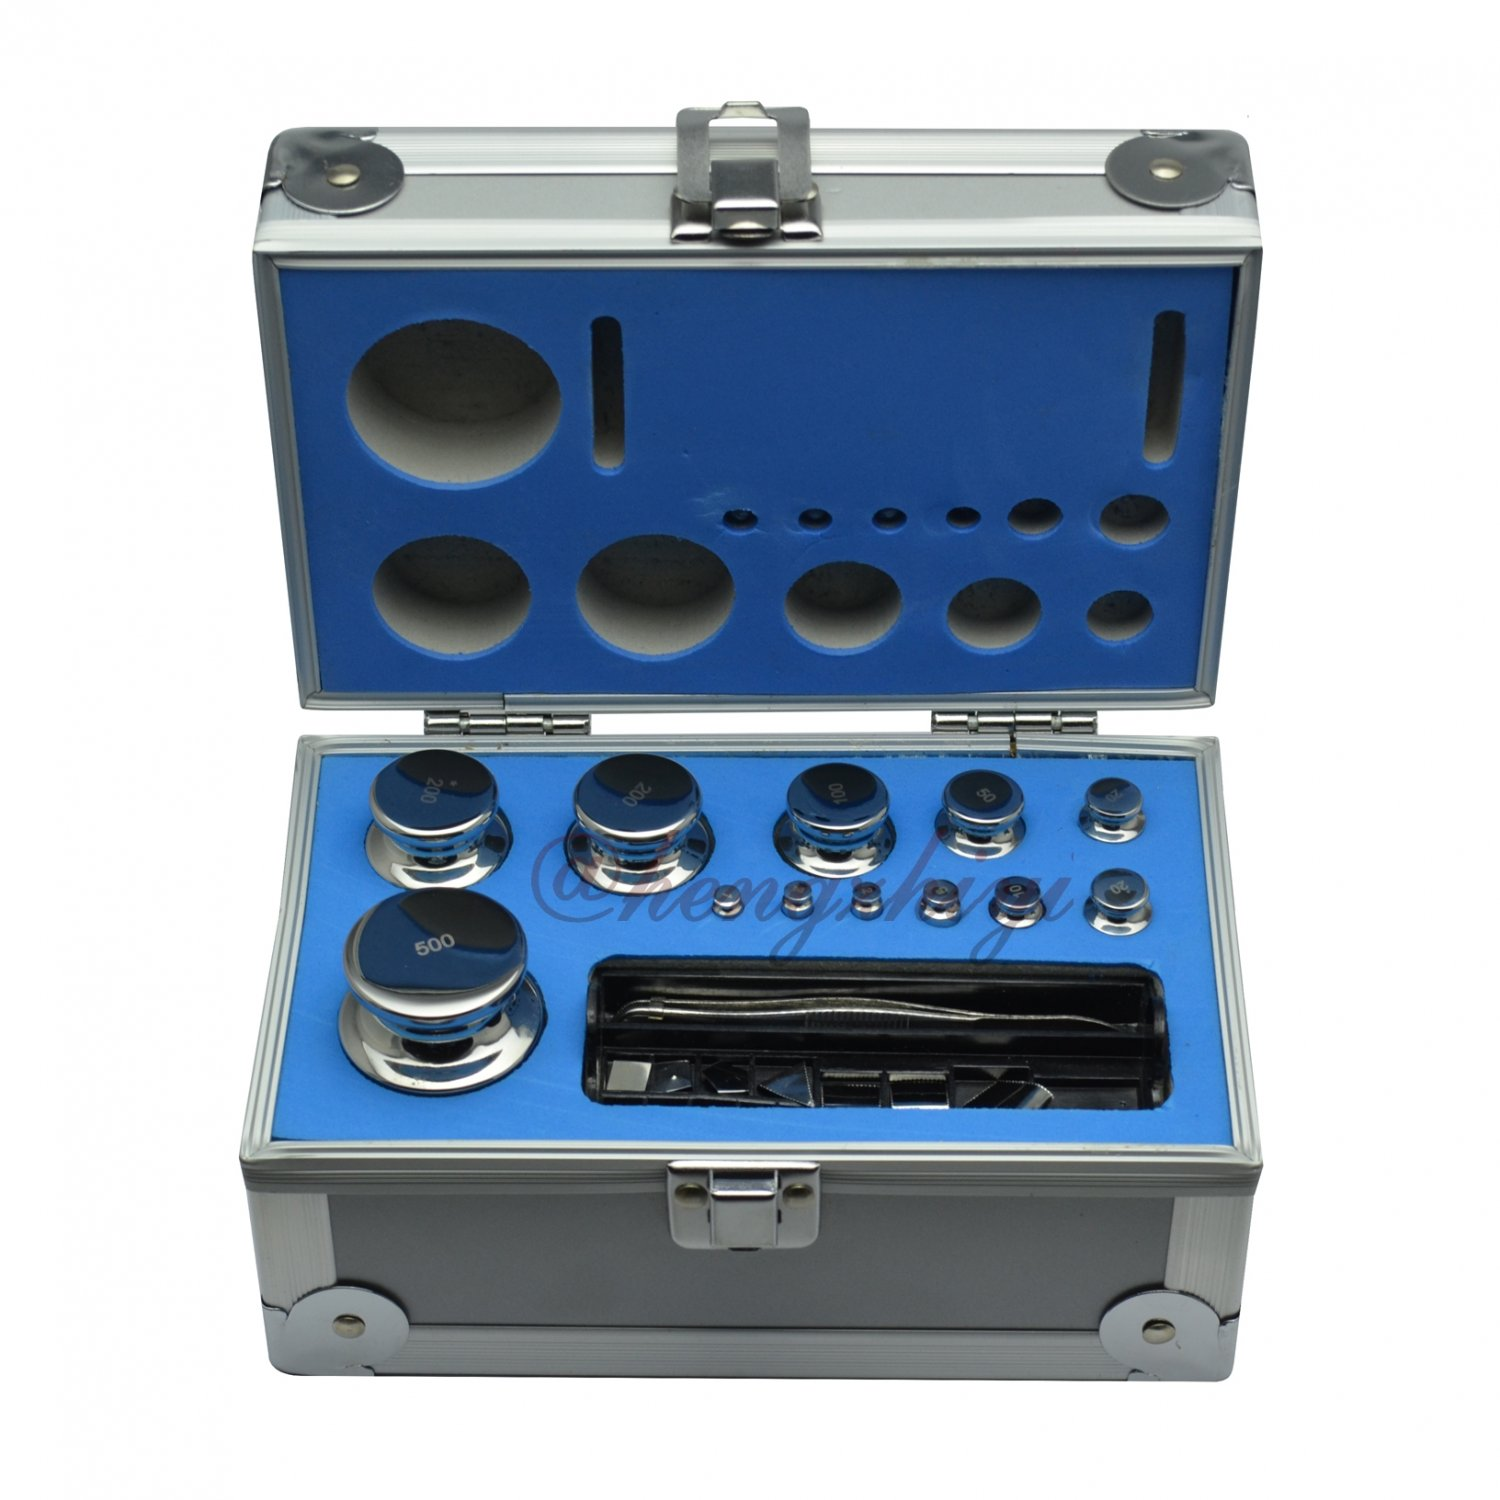 F1 Class 24pc 1mg-500g Stainless Steel Scale Calibration Weight Kit Set w Certificate, Free Shipping